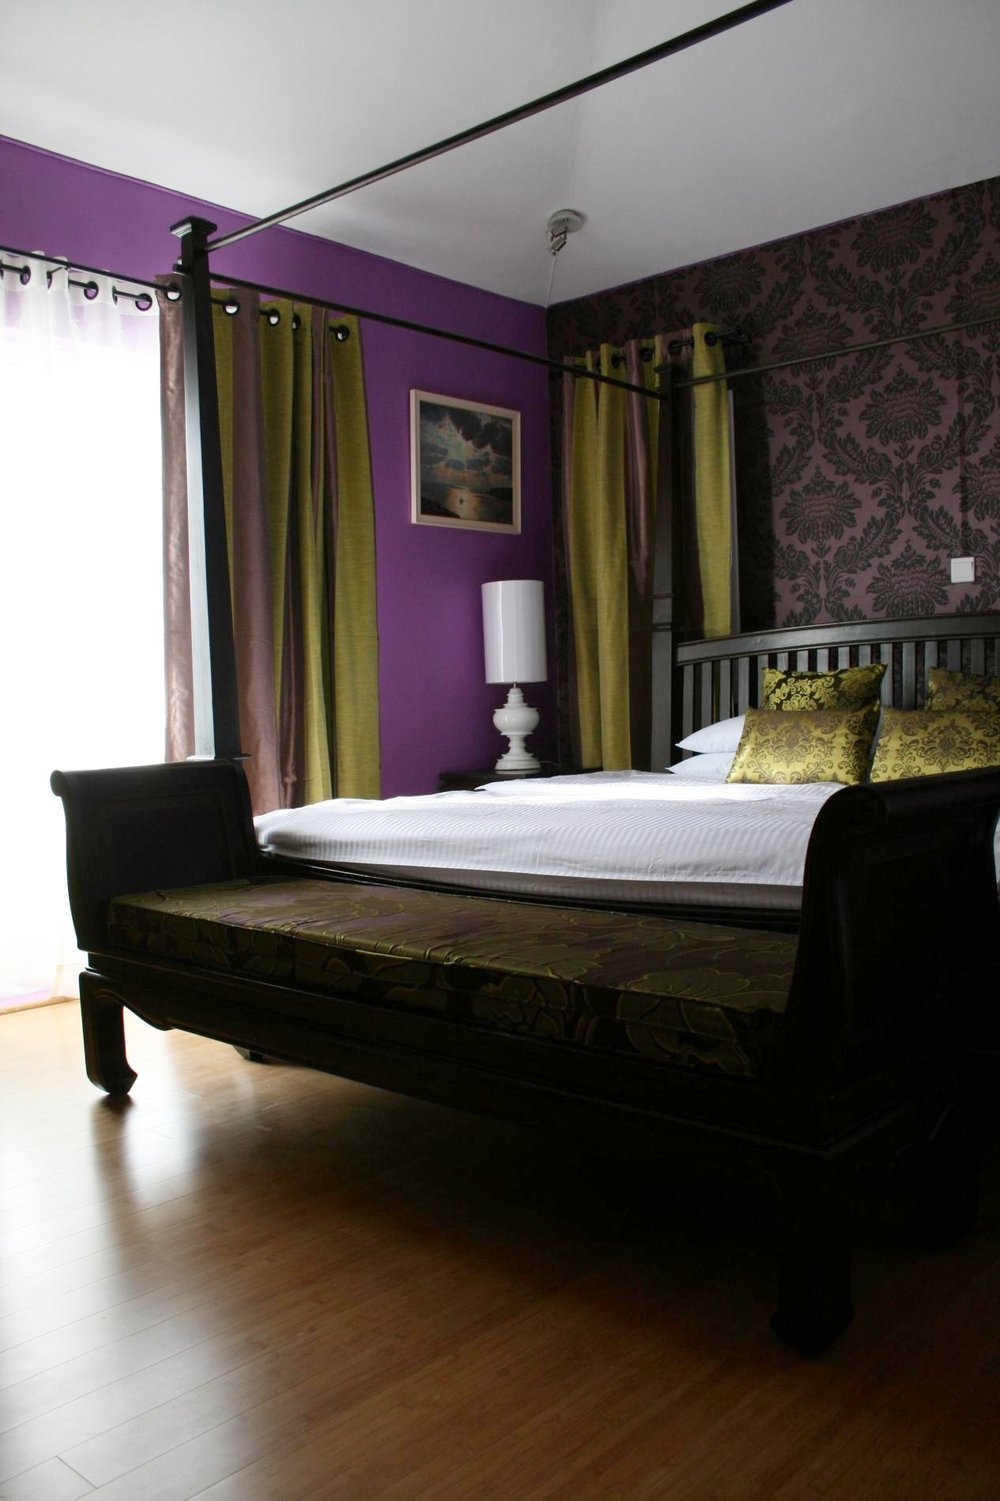 purple-guest-bedroom-15653-1900.jpg